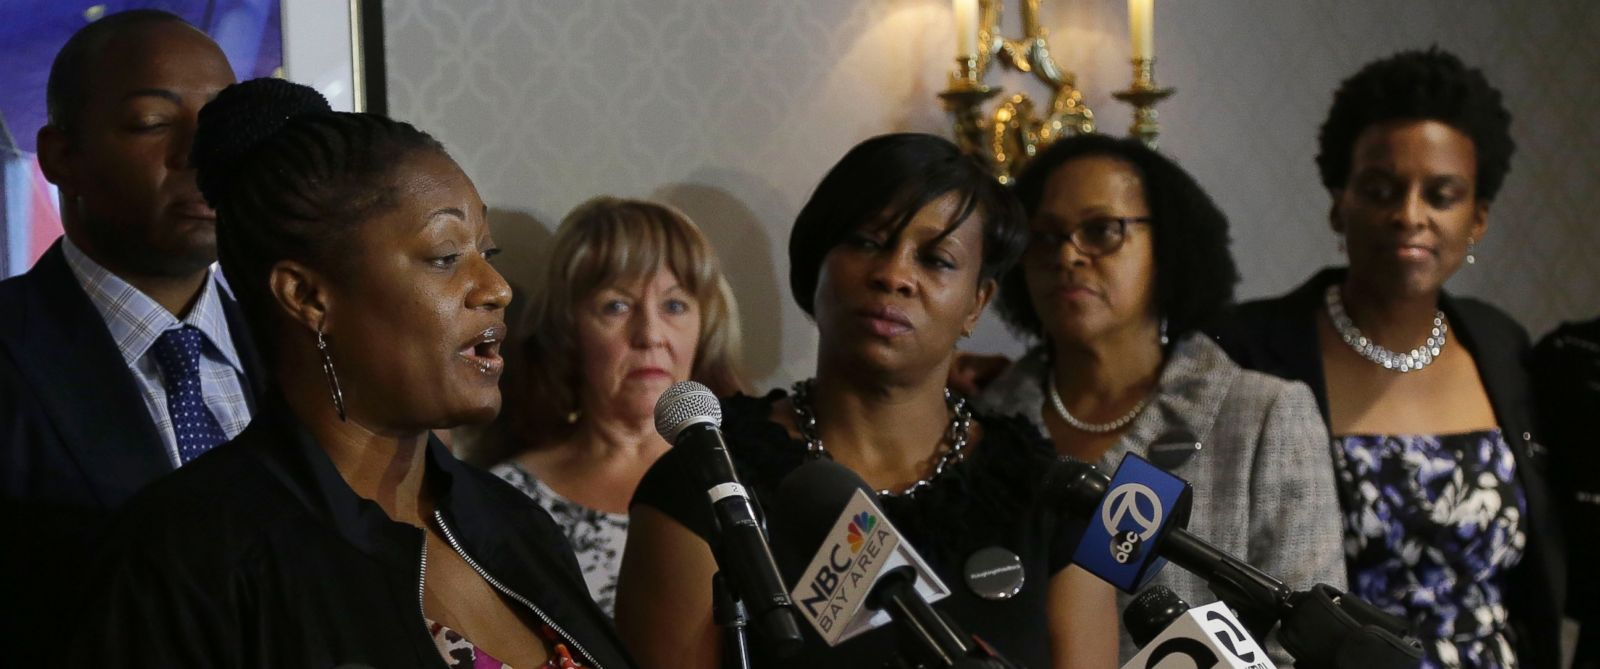 PHOTO: Tira McDonald, left, one of the plaintiffs filing a lawsuit over their ejection from a Napa Valley Wine Train, speaks at a news conference, Oct. 1, 2015, in San Francisco.